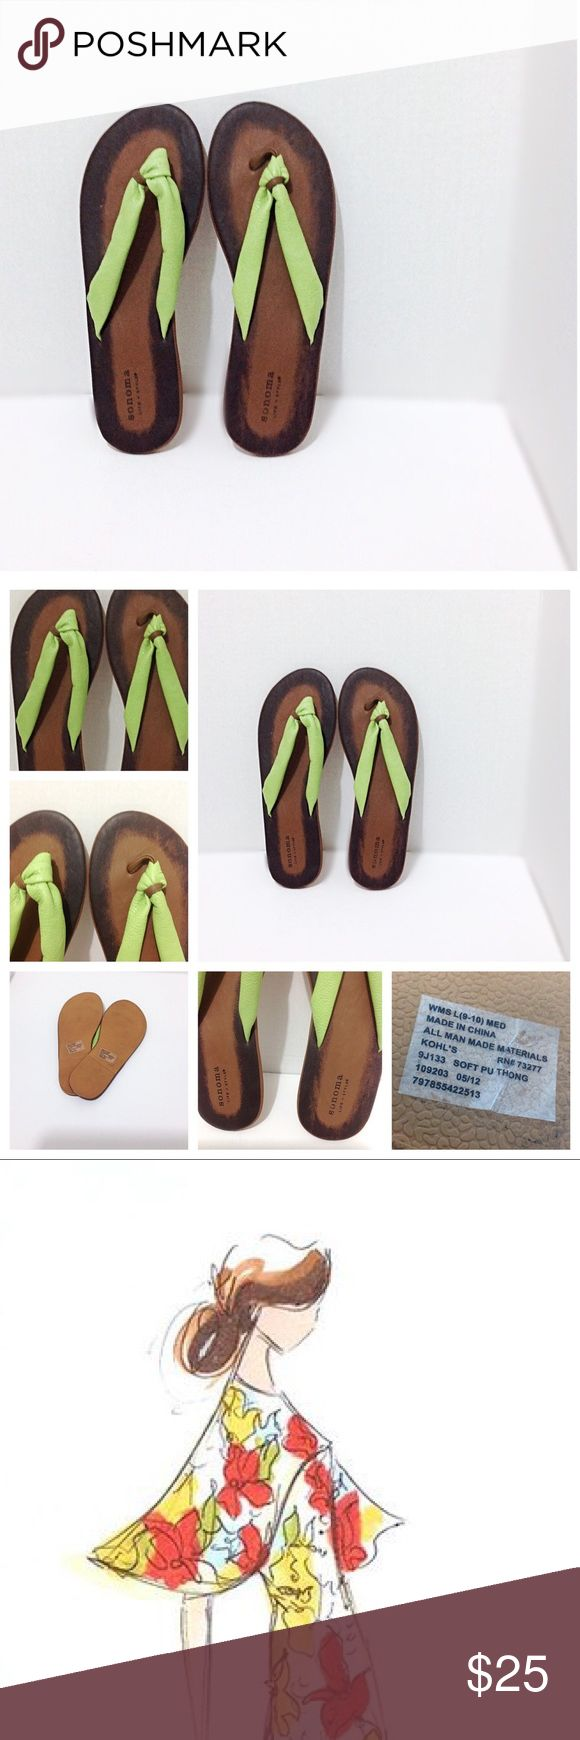 Sonoma Trendy Green Flip Flops. Chic Summer Sandal Beautiful & Feminine Sonoma Life & Style Flat Sandals! Girly boho lime green & camel brown thong / flip flop, with a semi knot detail on the strap by the toes. Super soft straps & very comfy. • These would be perfect for casual office days, cruises, vacation, summer travels, swimming pool, beach, honeymoon, girls day shopping, running errands, or any day! • NWOT Only try on at the store • Man made materials and rubber soles! • smoke & cat…